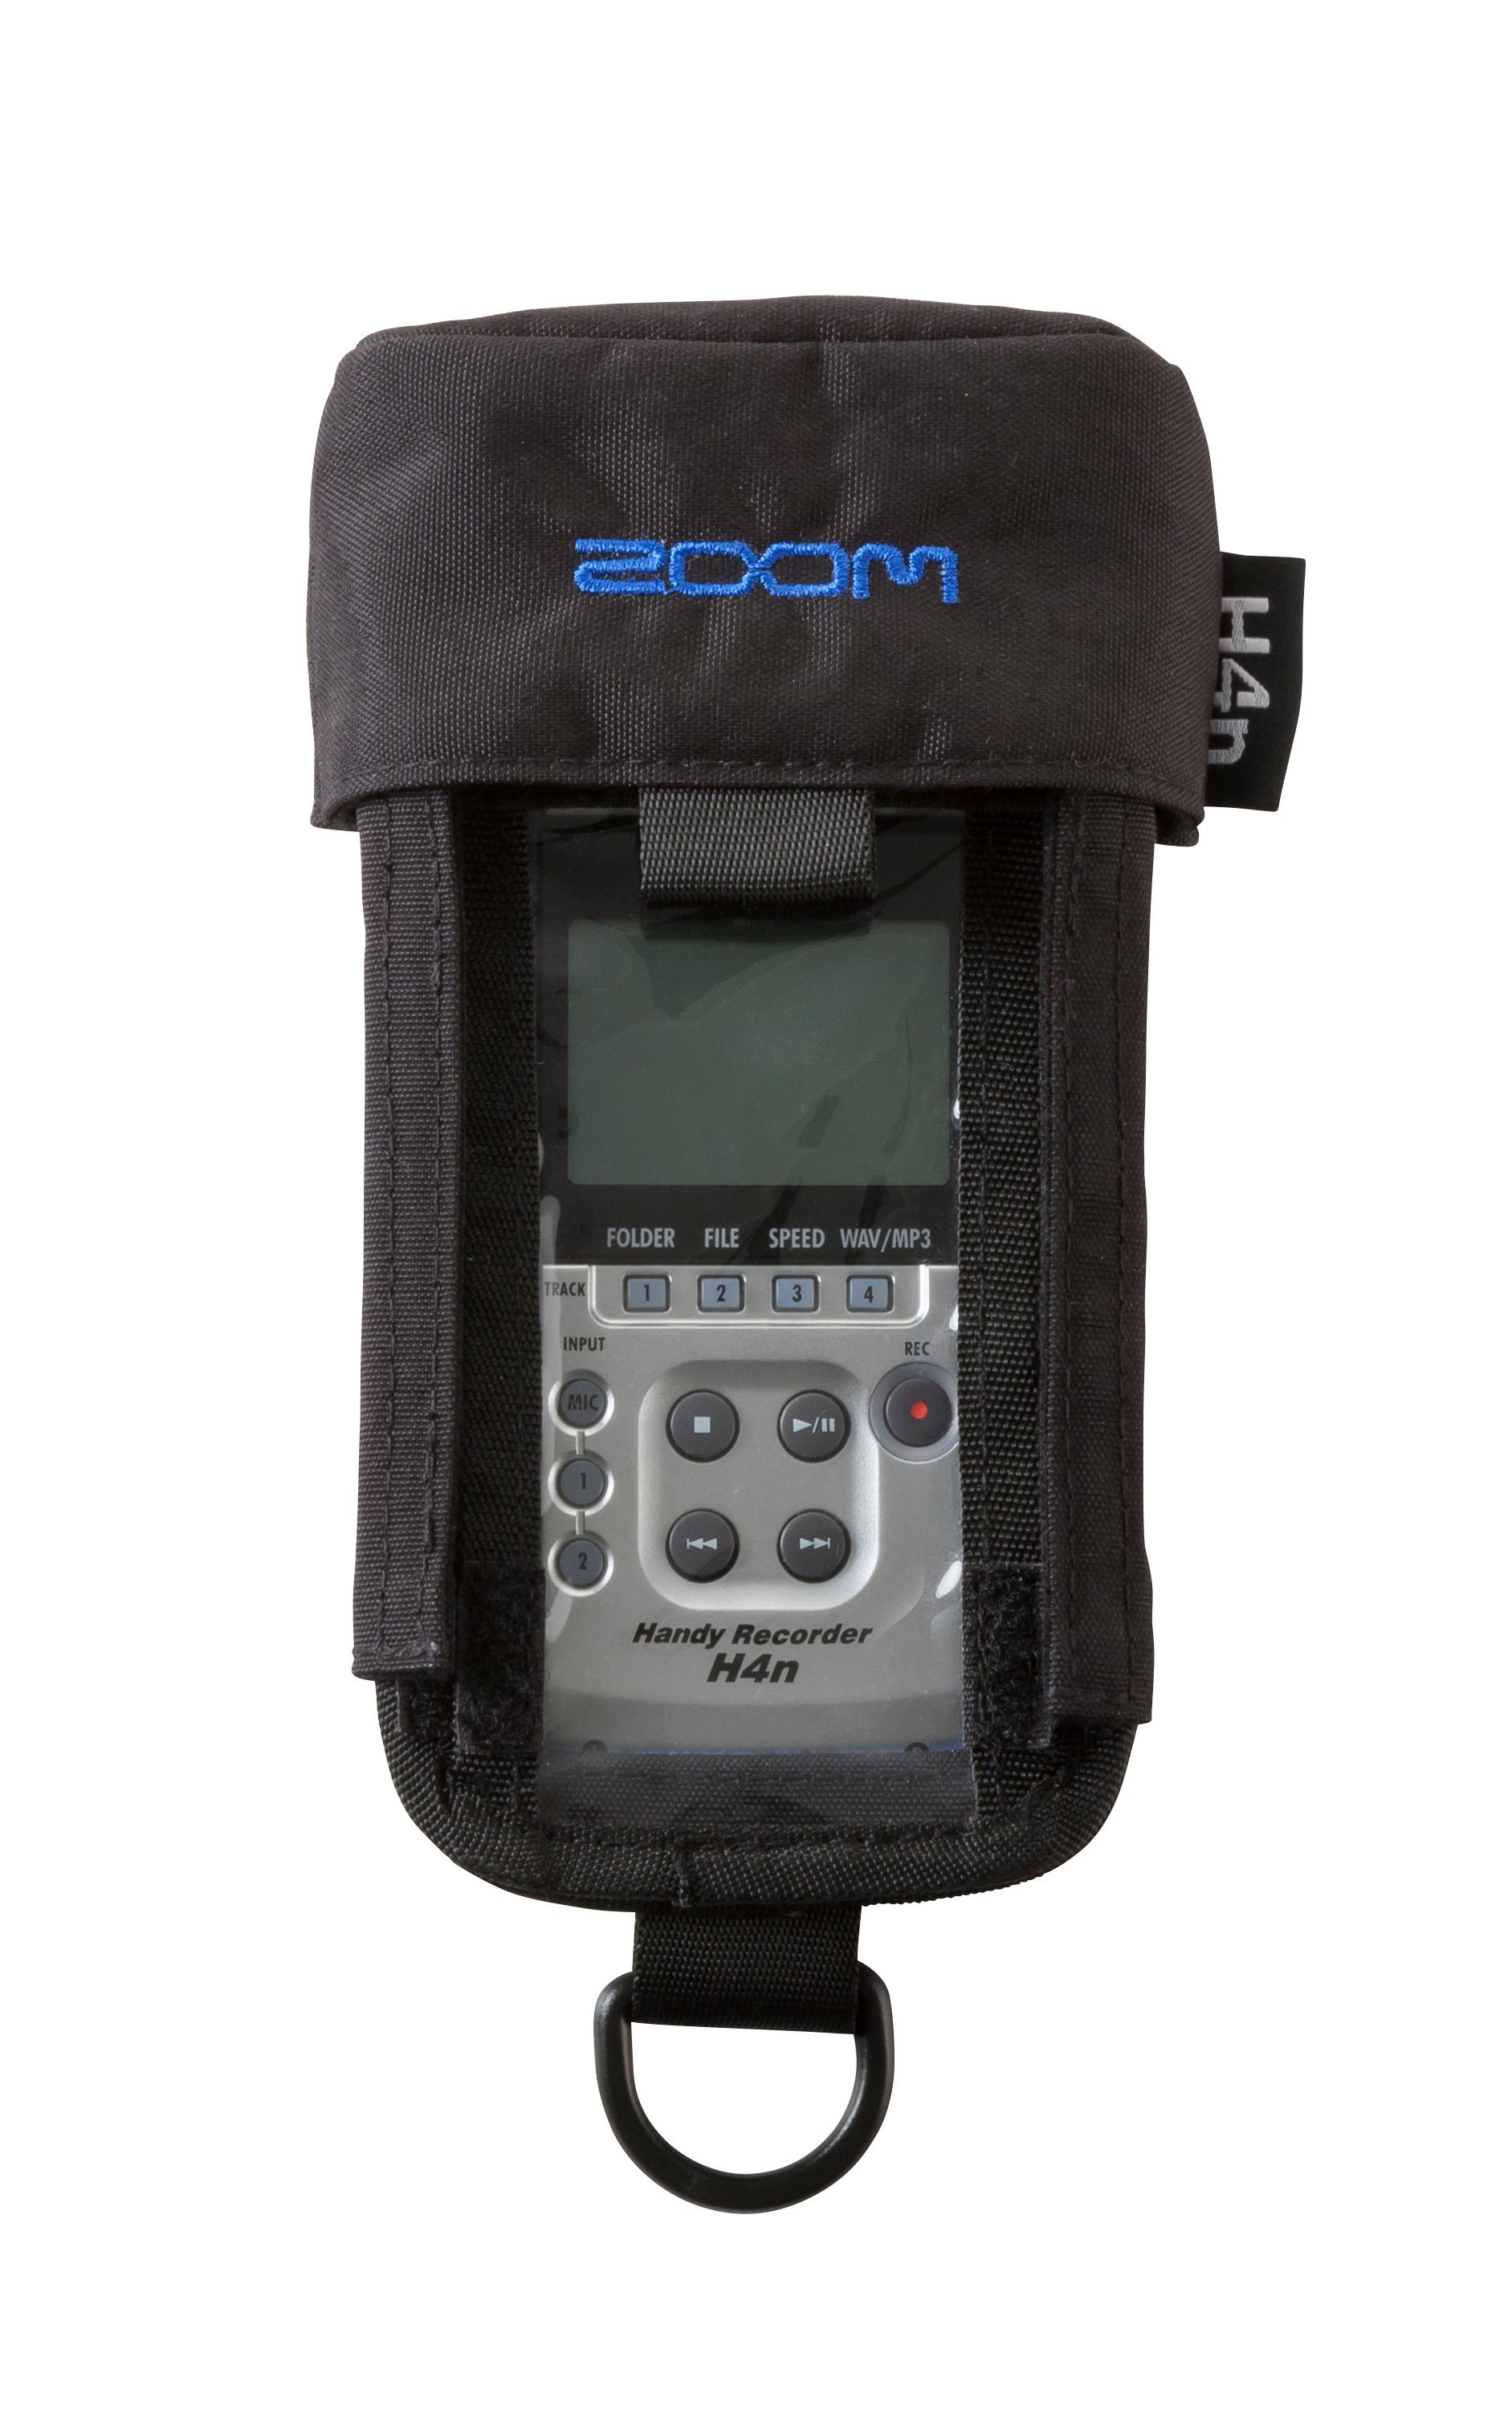 Protective Case for H4n Handy Recorder by Zoom, PCH-4N